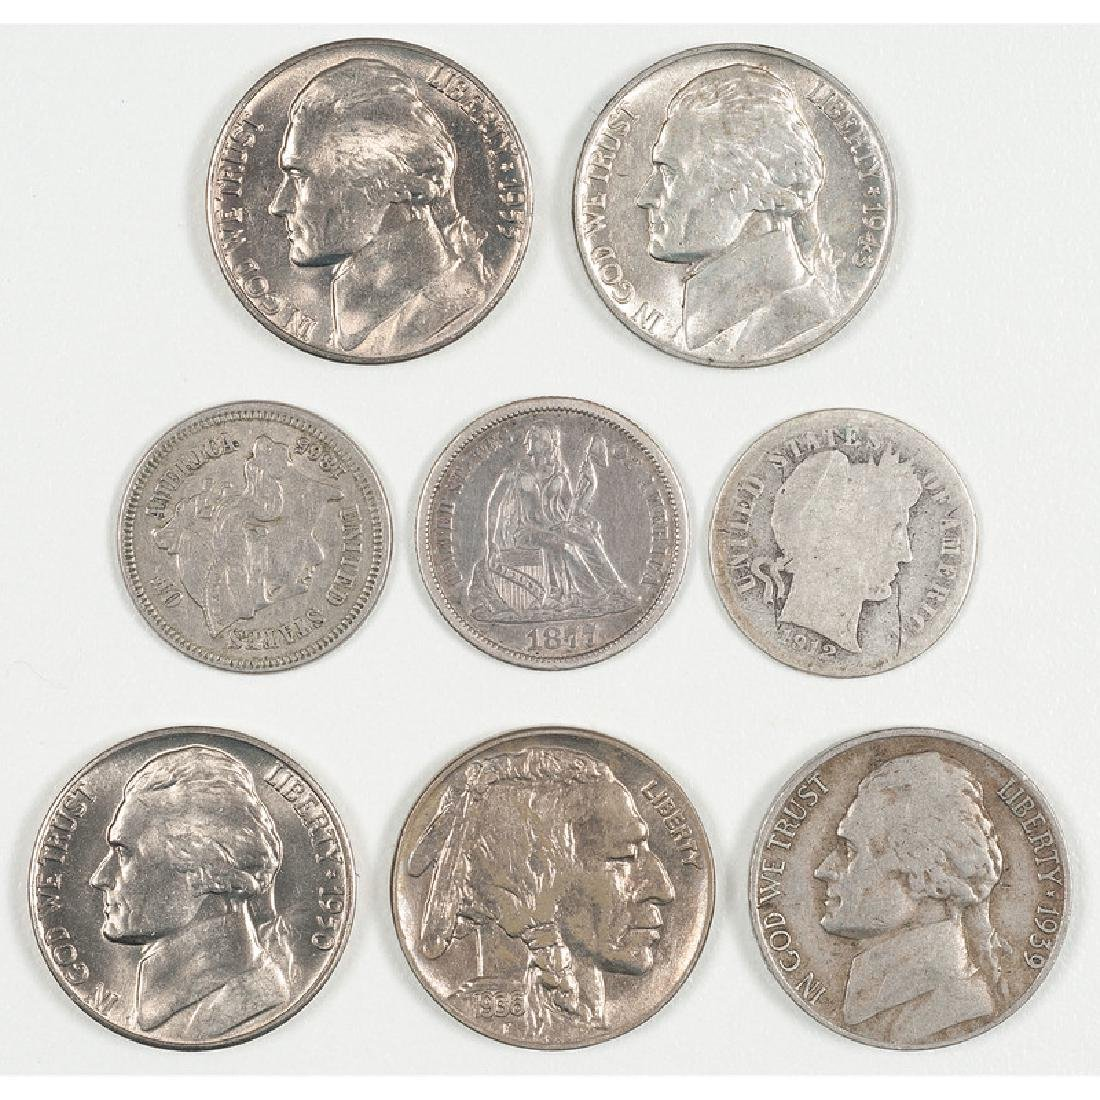 Assorted United States Currency